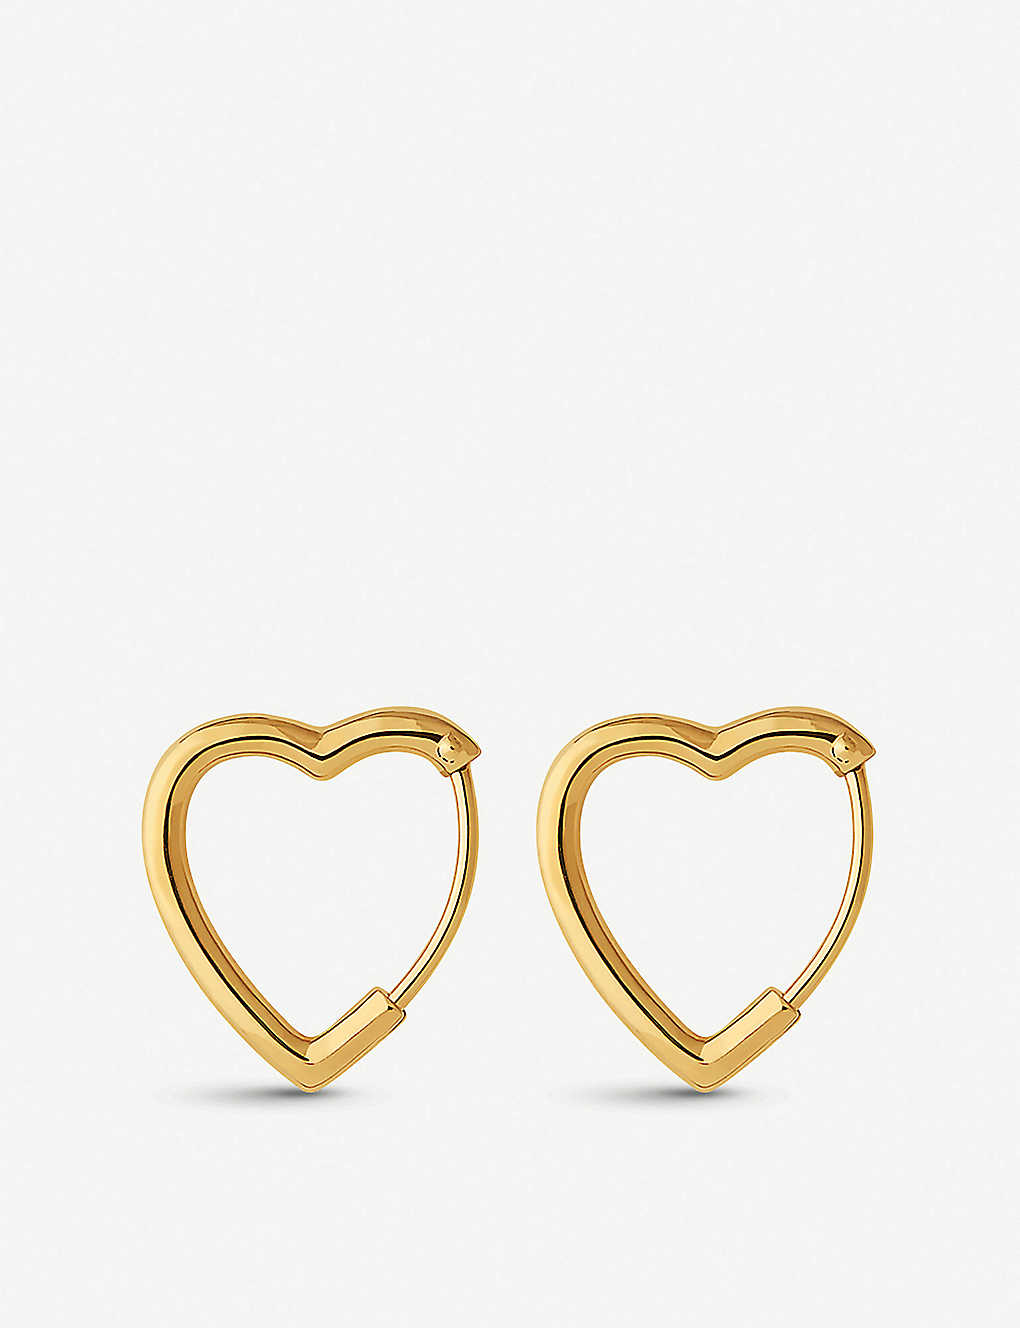 LINKS OF LONDON: Endless Love 18ct yellow-gold vermeil hoop earrings